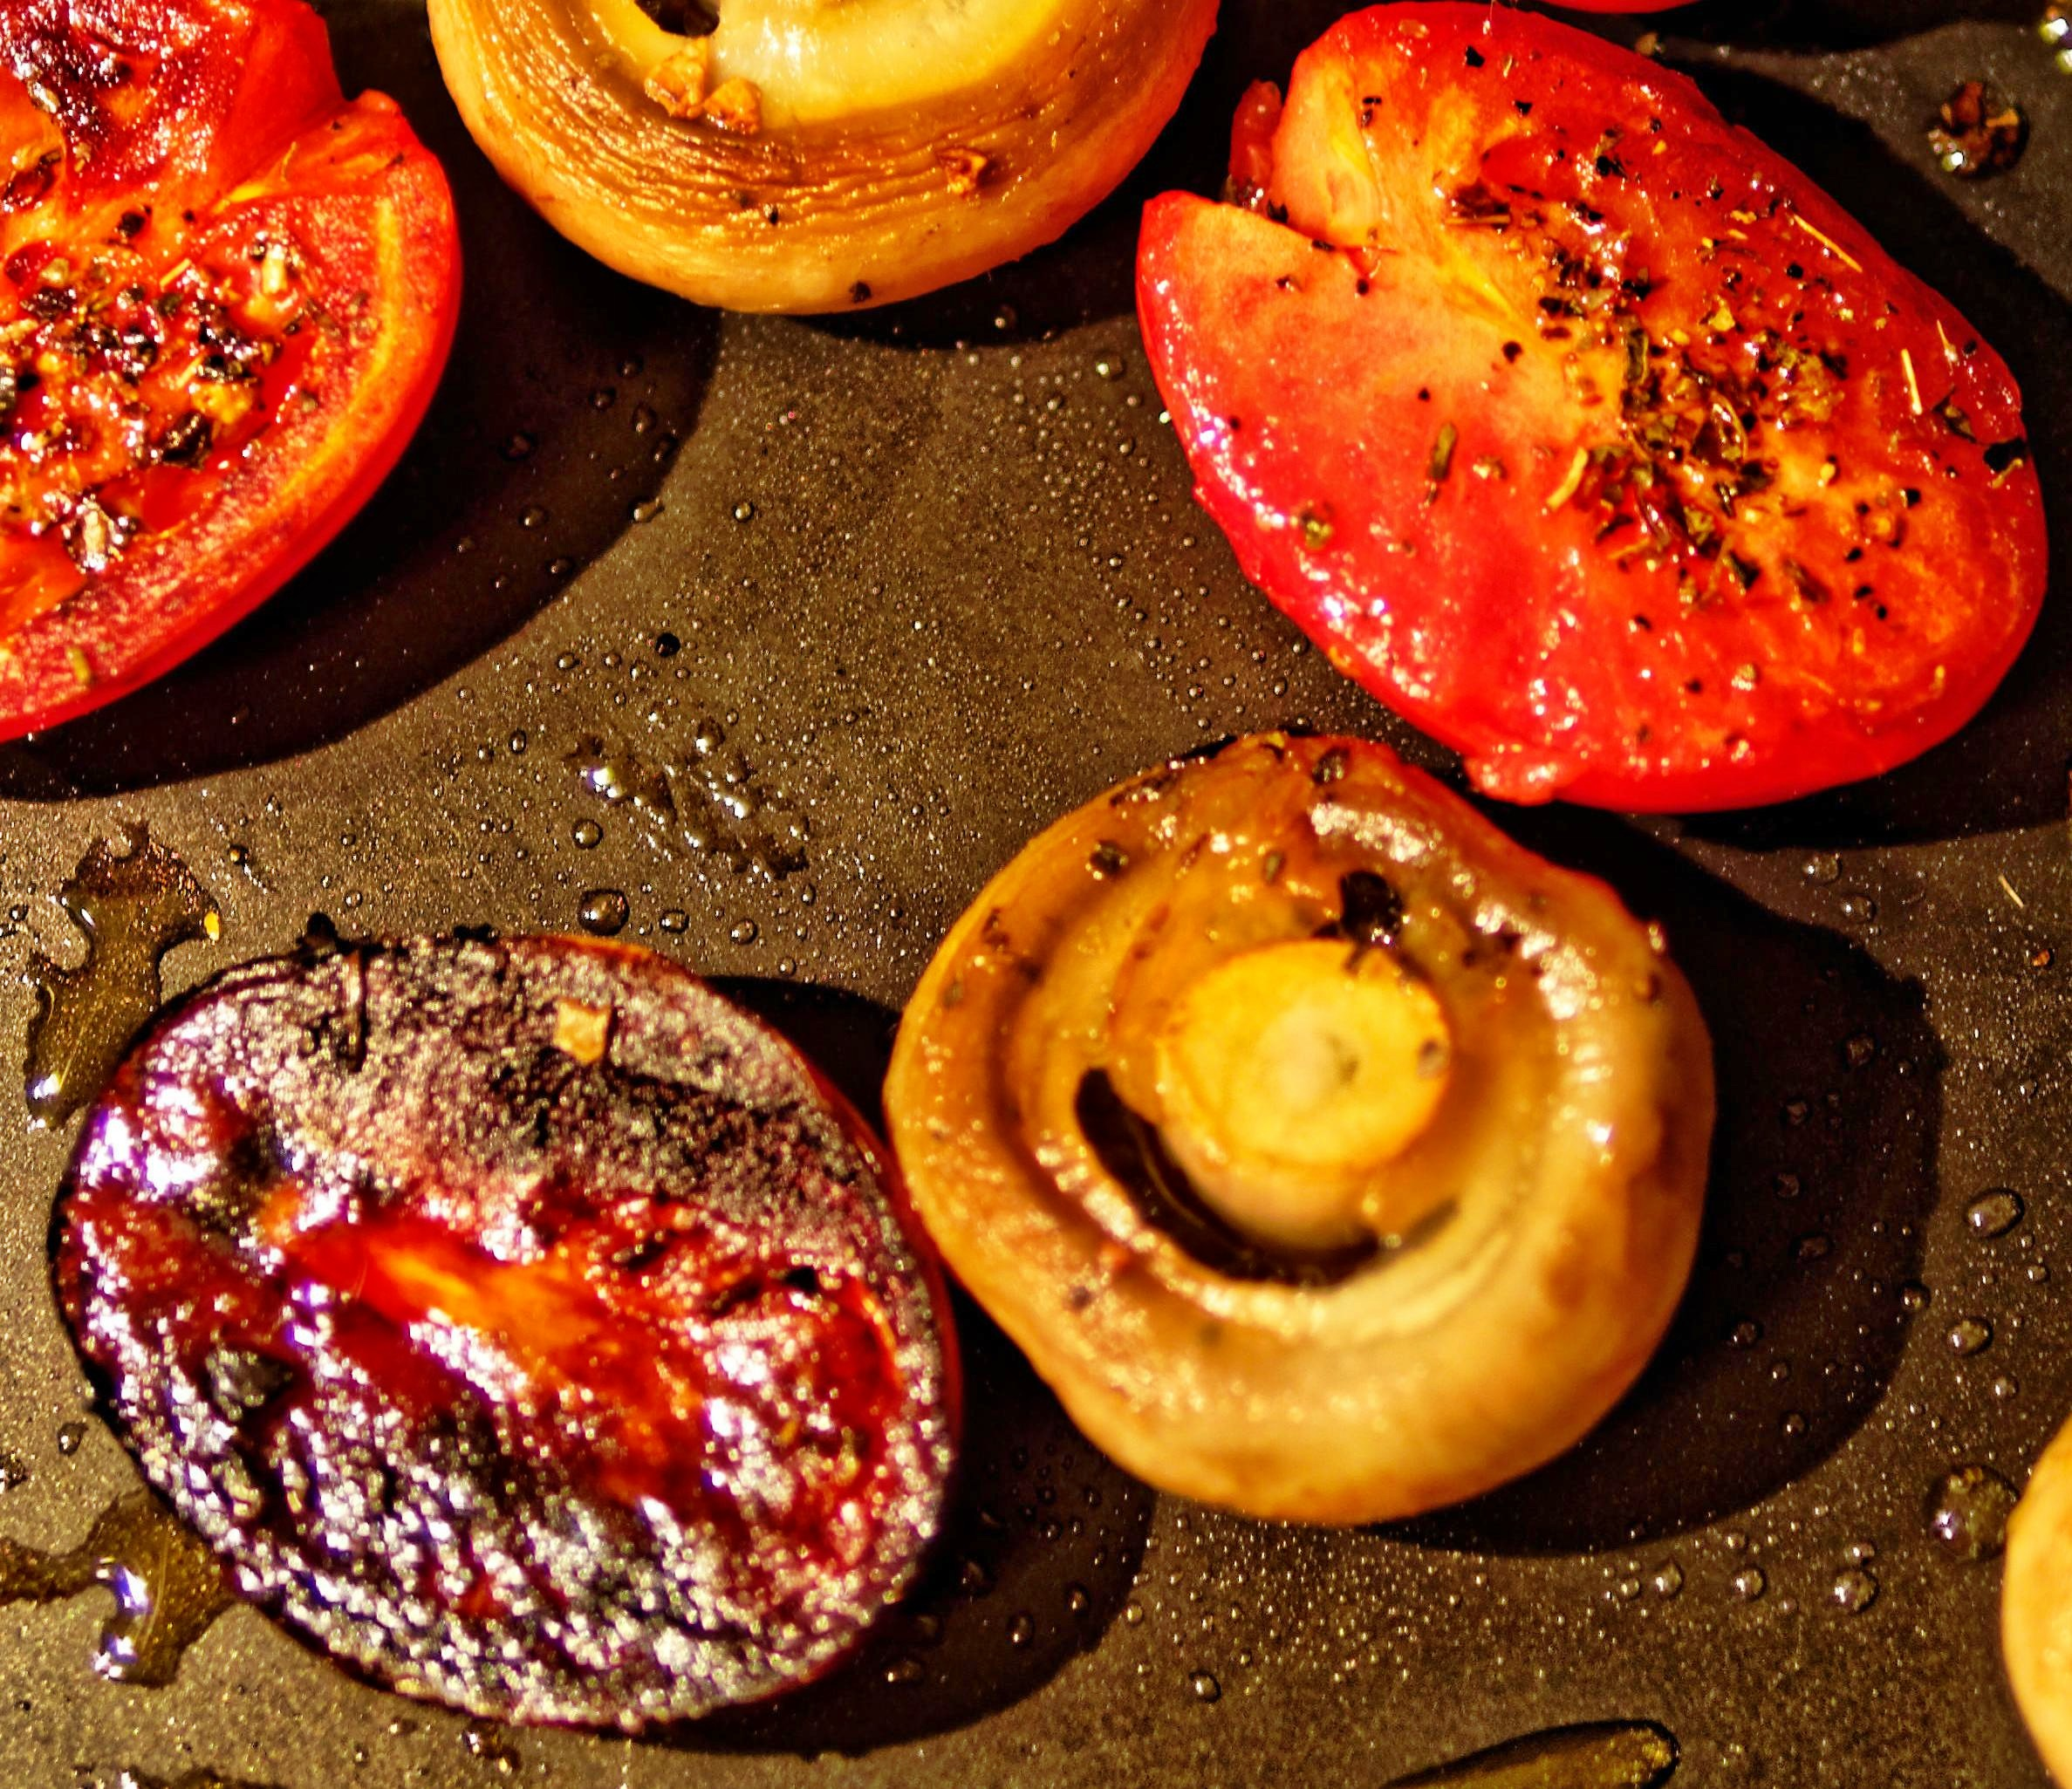 This should be Tomatoes-mushrooms-detail.jpeg.  Is it missing?